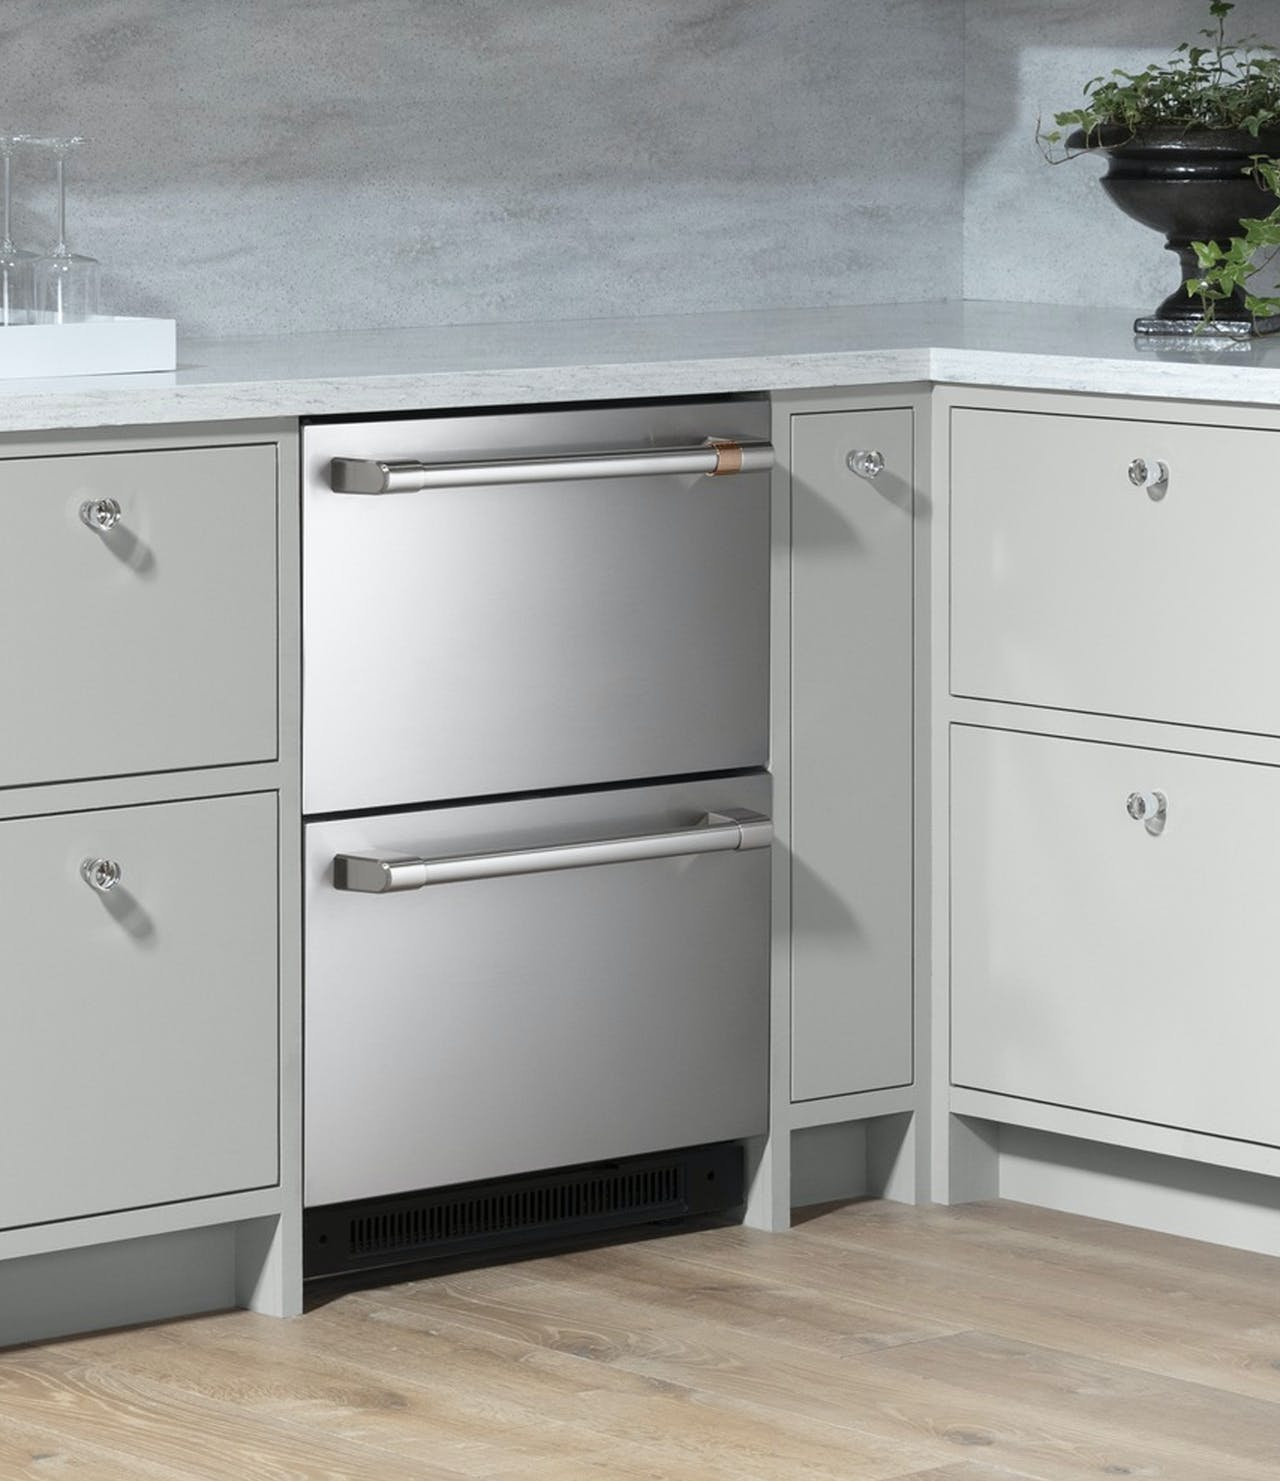 dual drawer undercounter stainless refrigerator